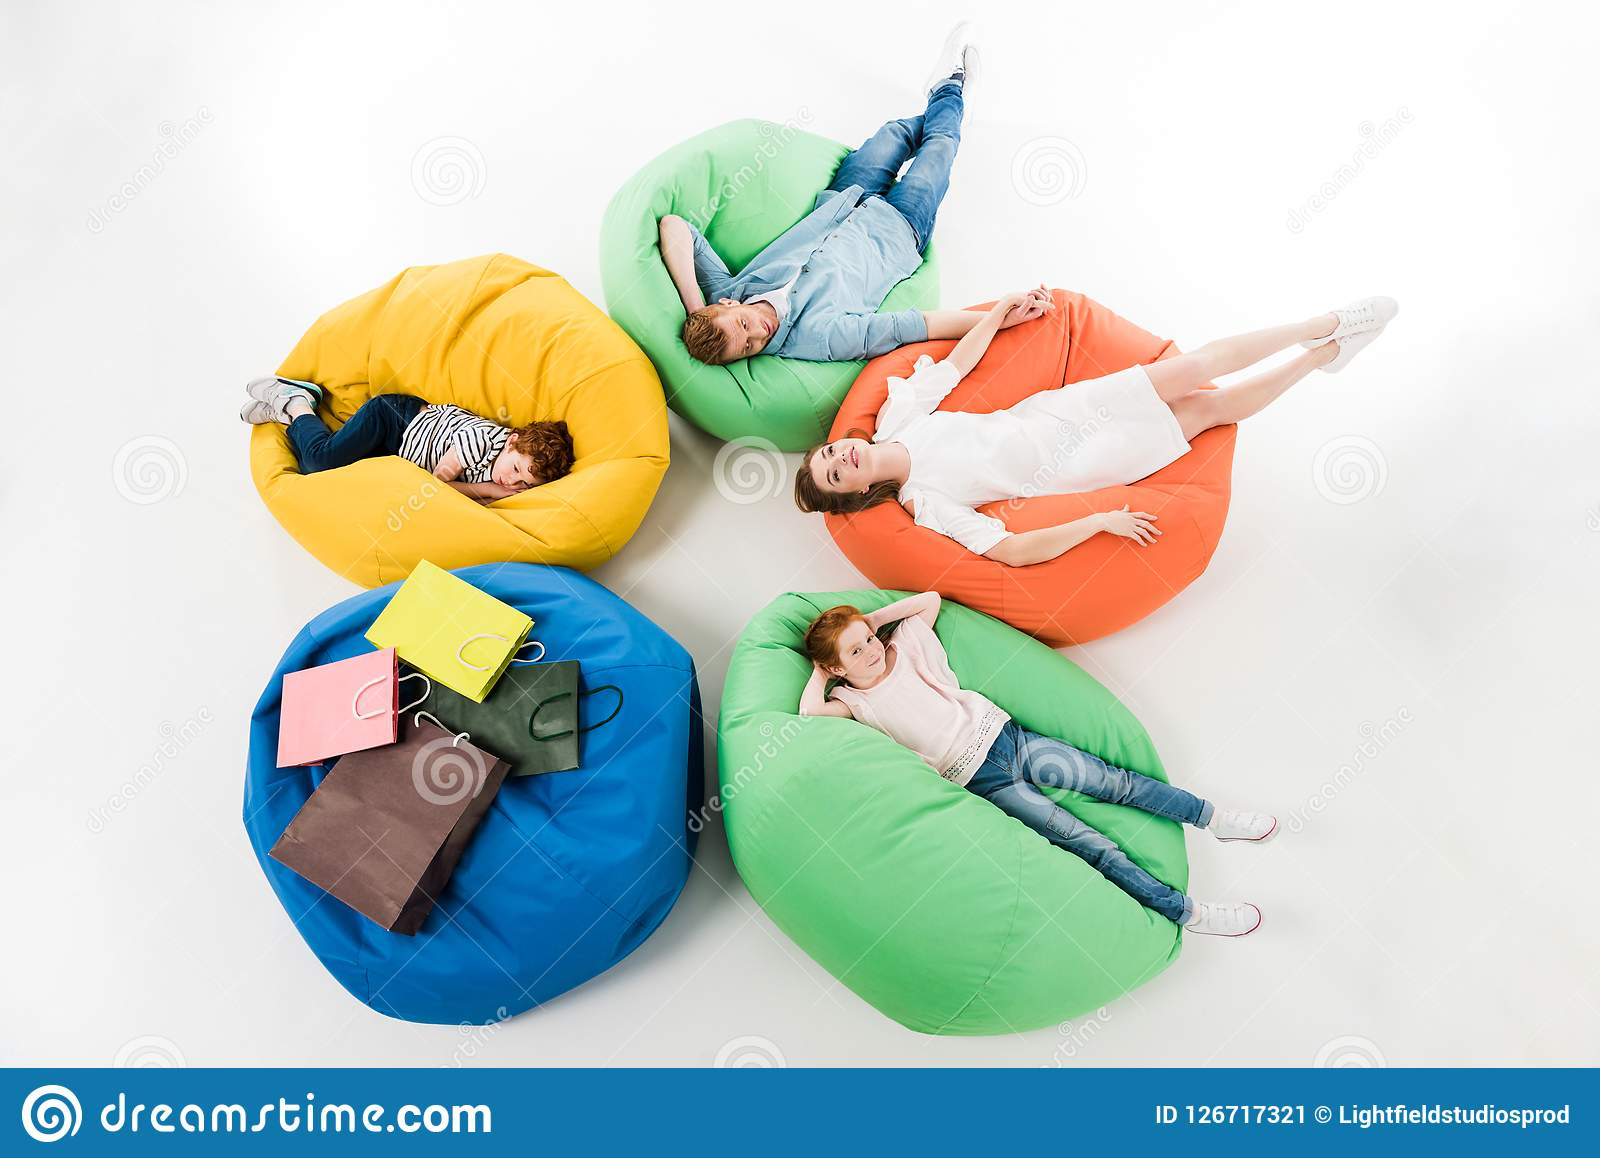 high angle view of young family with two kids resting on bean bag chairs after shopping